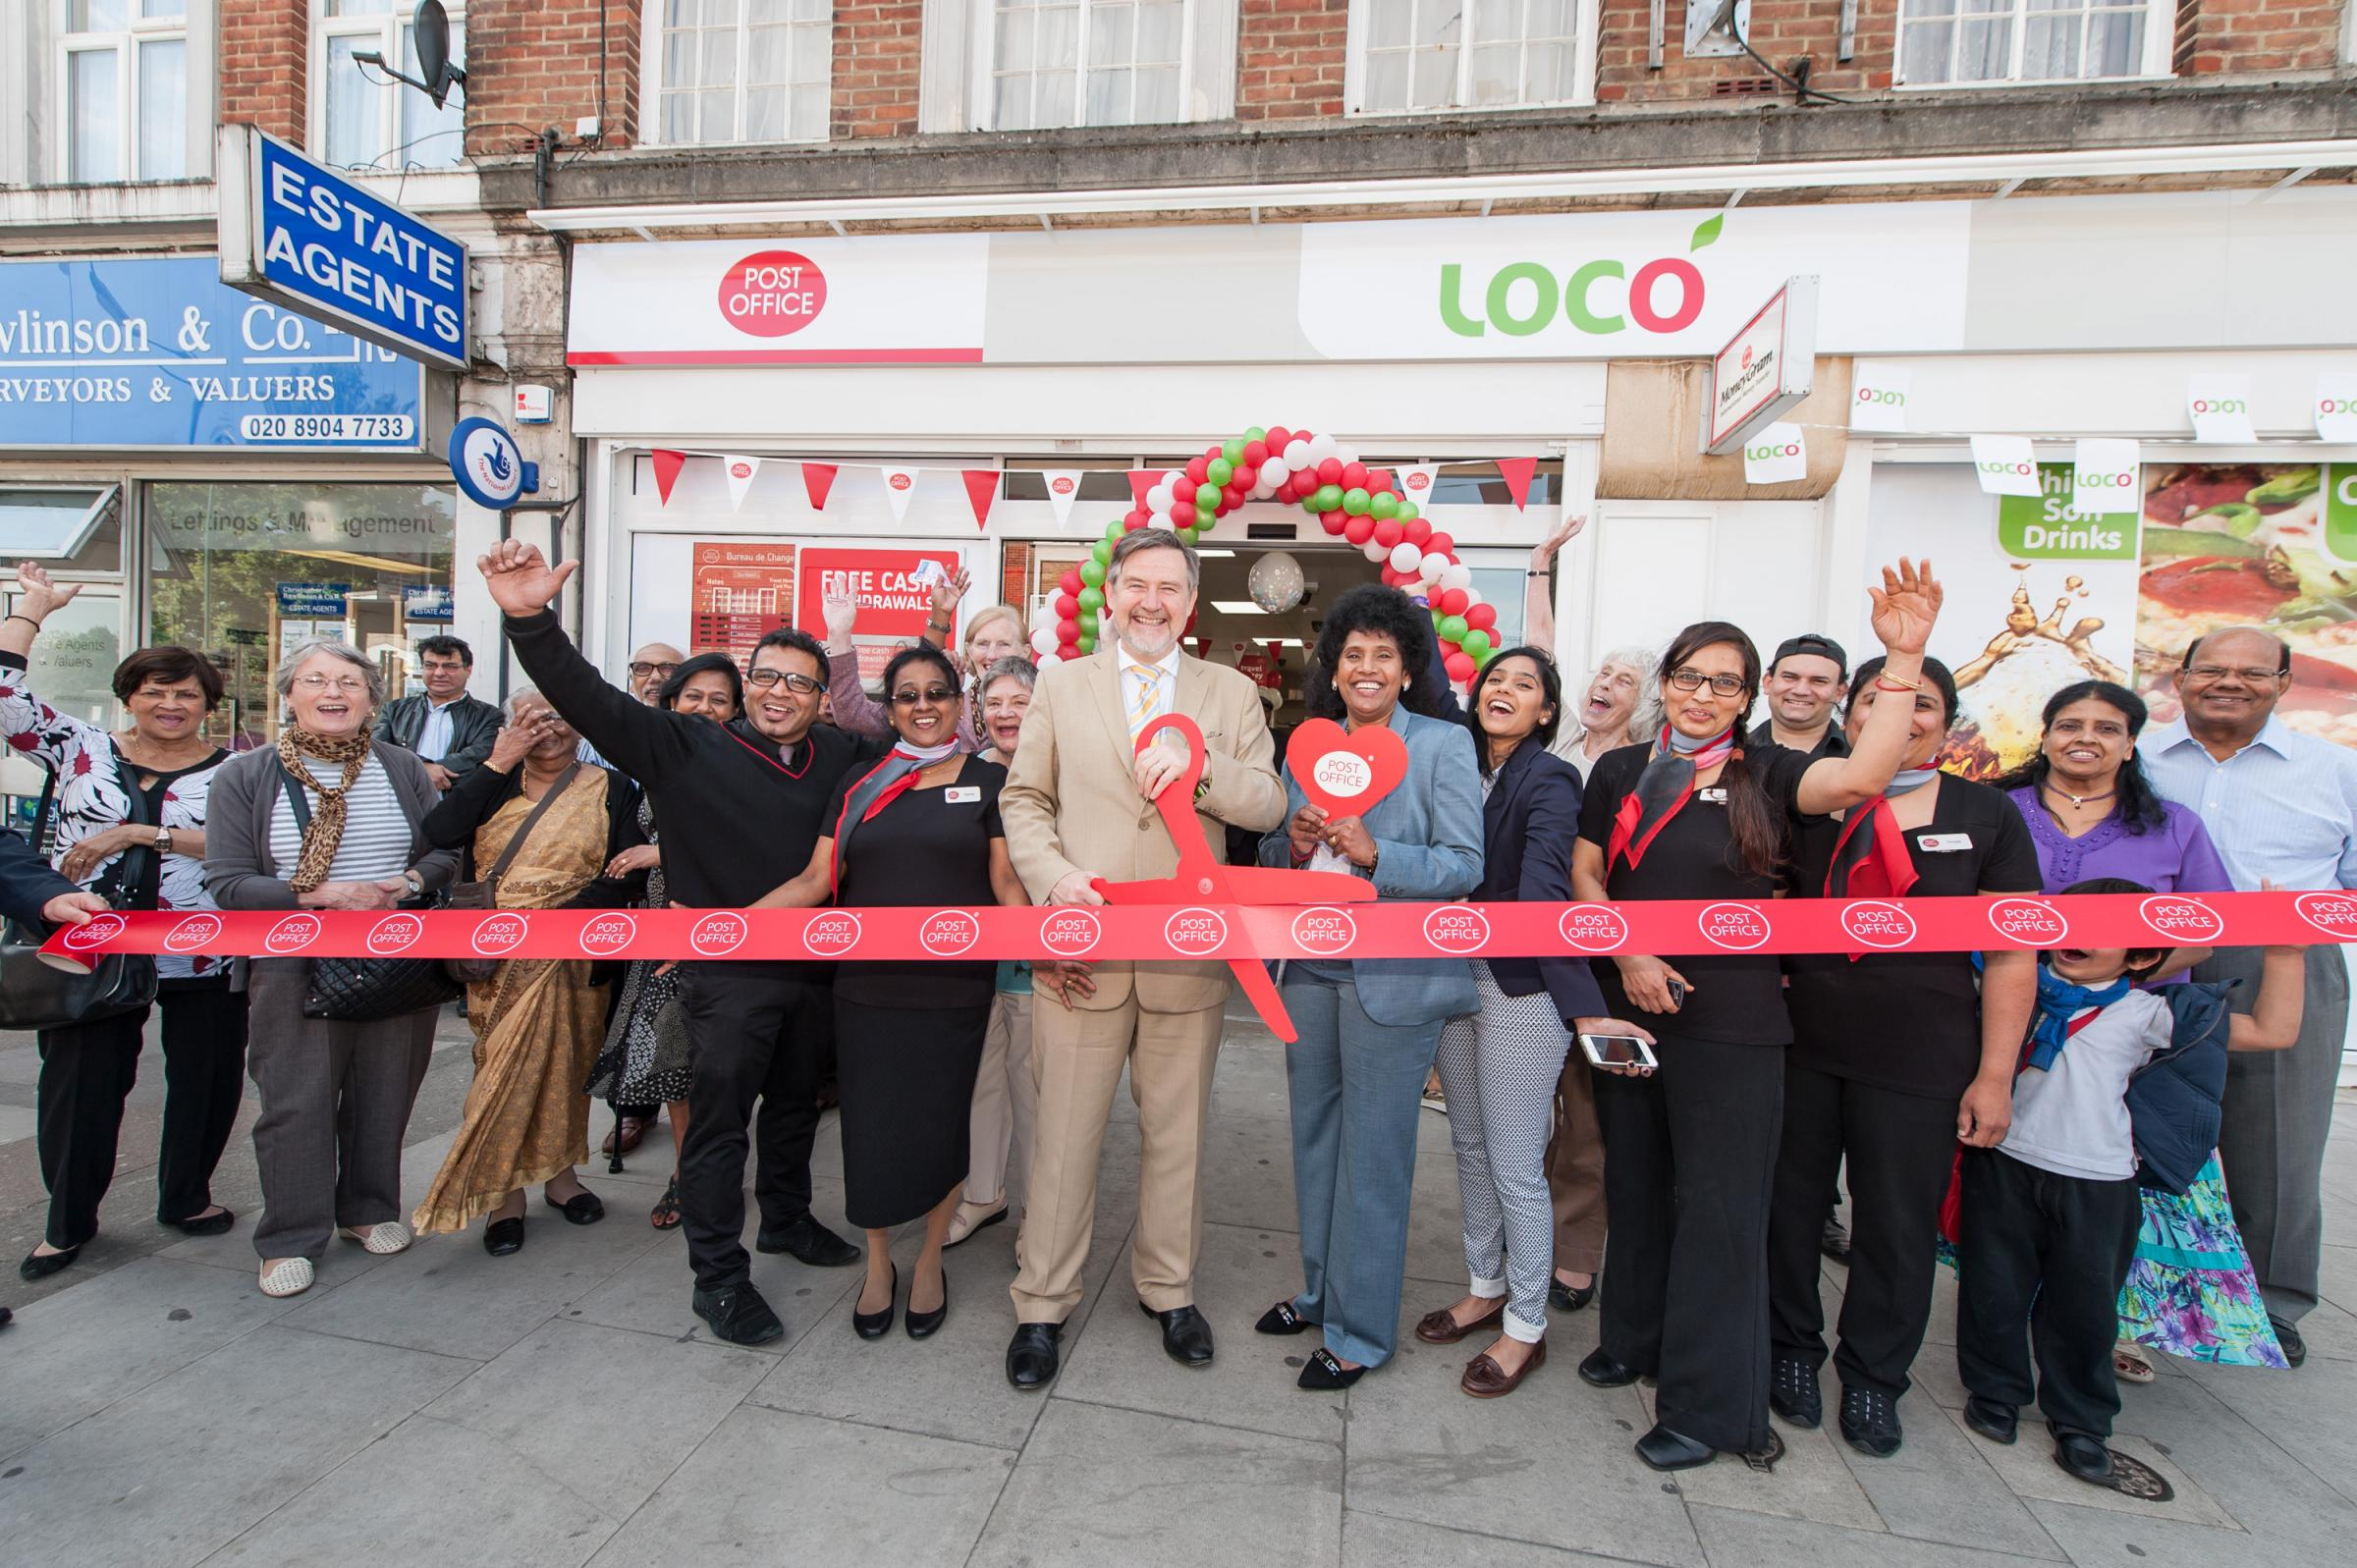 The brand new Preston Road post office in Harrow